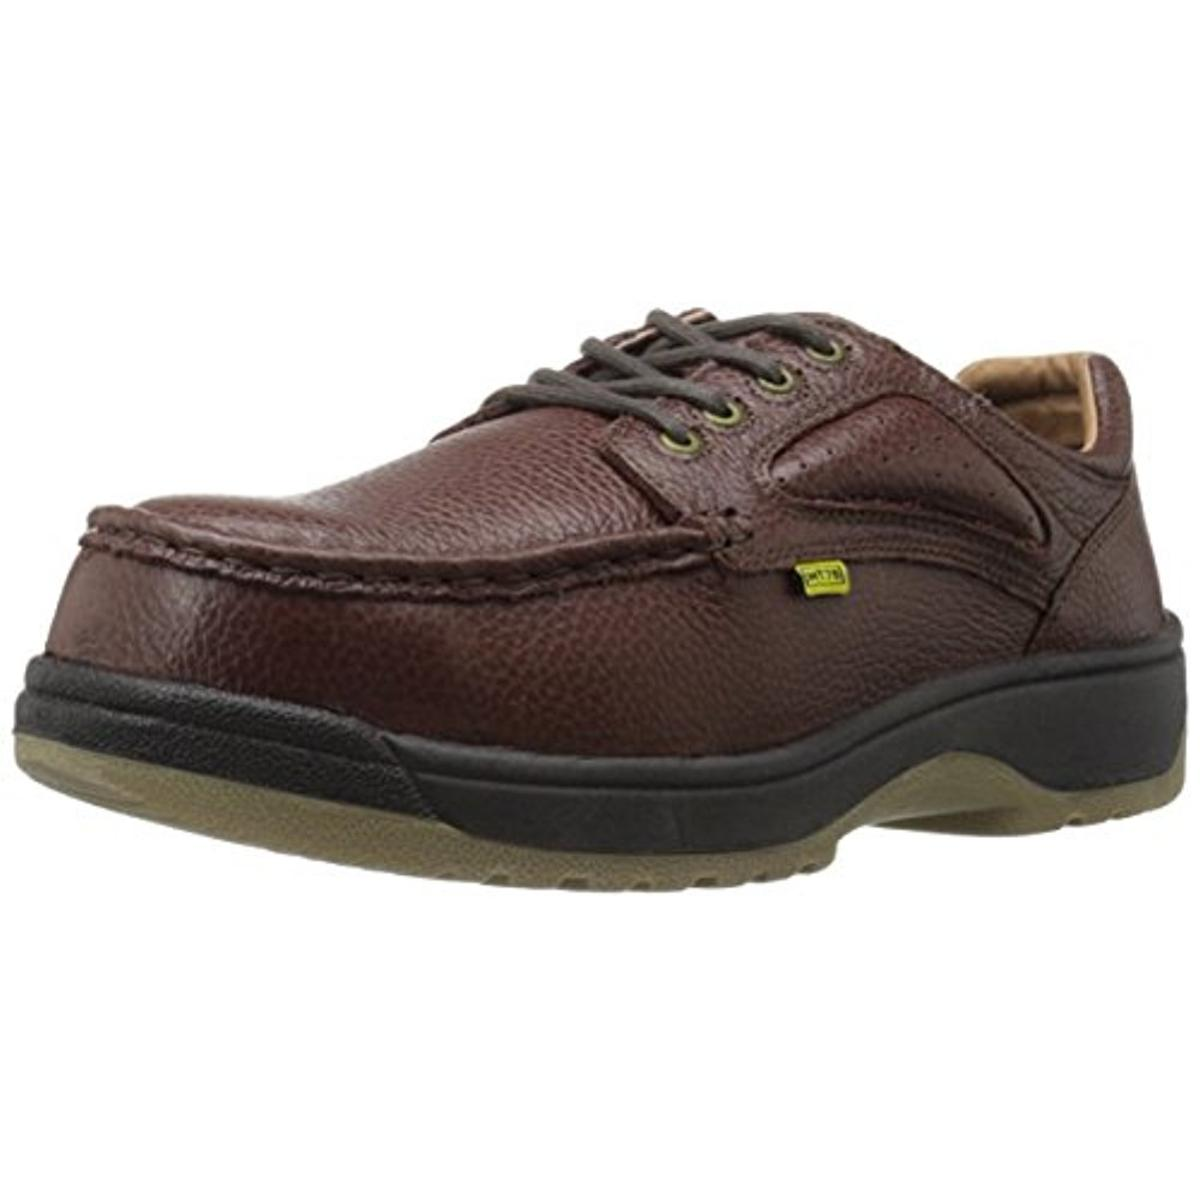 Florsheim Mens Leather Composite Toe Work Shoes by Florsheim